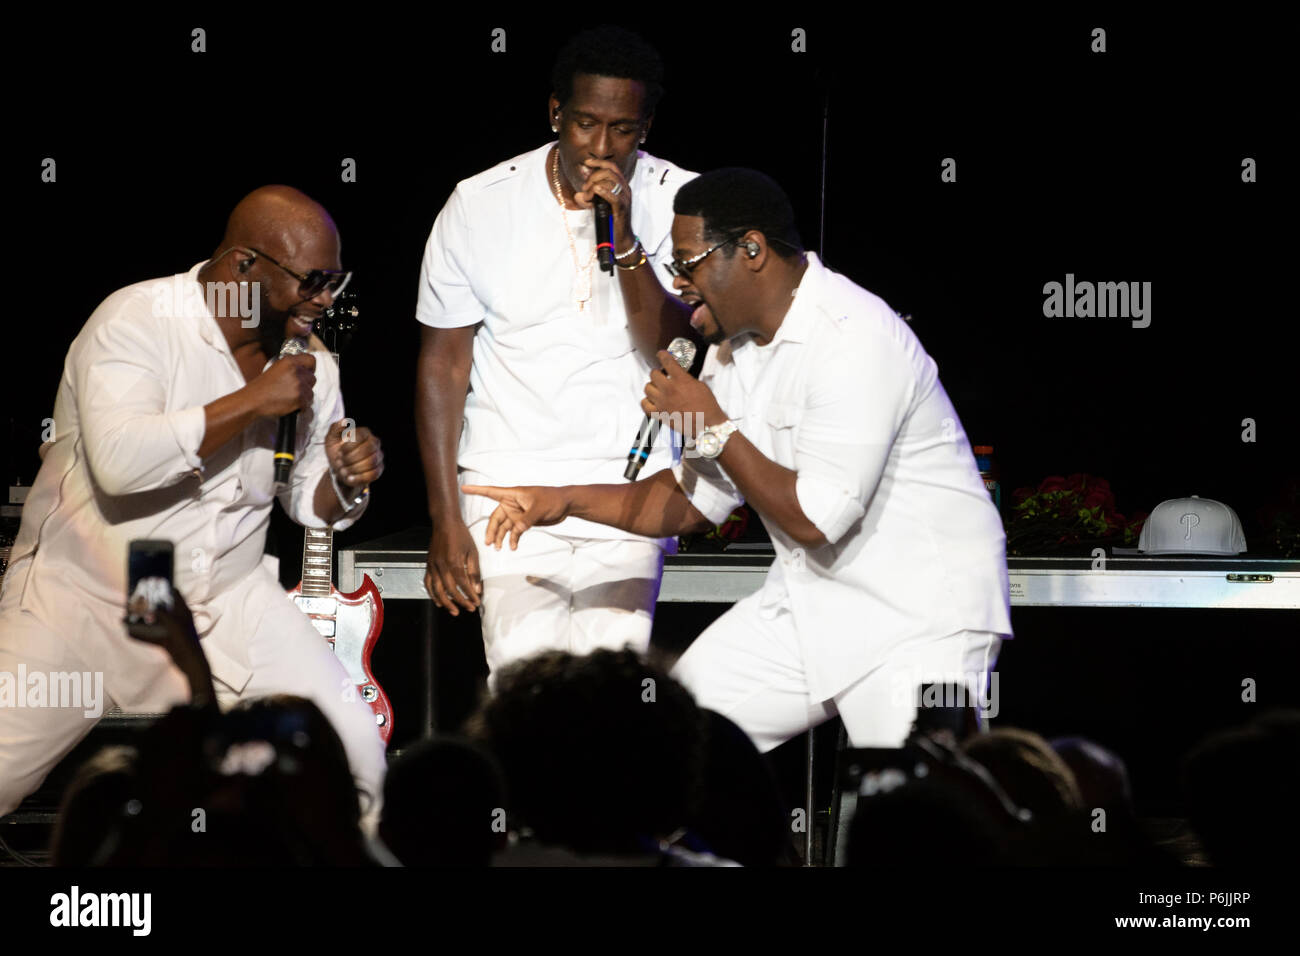 Philadelphia, Pennsylvania, USA. 30th June, 2018. WANYA MORRIS, NATHAN MORRIS and SHAWN STOCKMAN, of BOYZ II MEN, performing at the Mann Center during the Jill Scott block party concert in Philadelphia PA Credit: Ricky Fitchett/ZUMA Wire/Alamy Live News - Stock Image